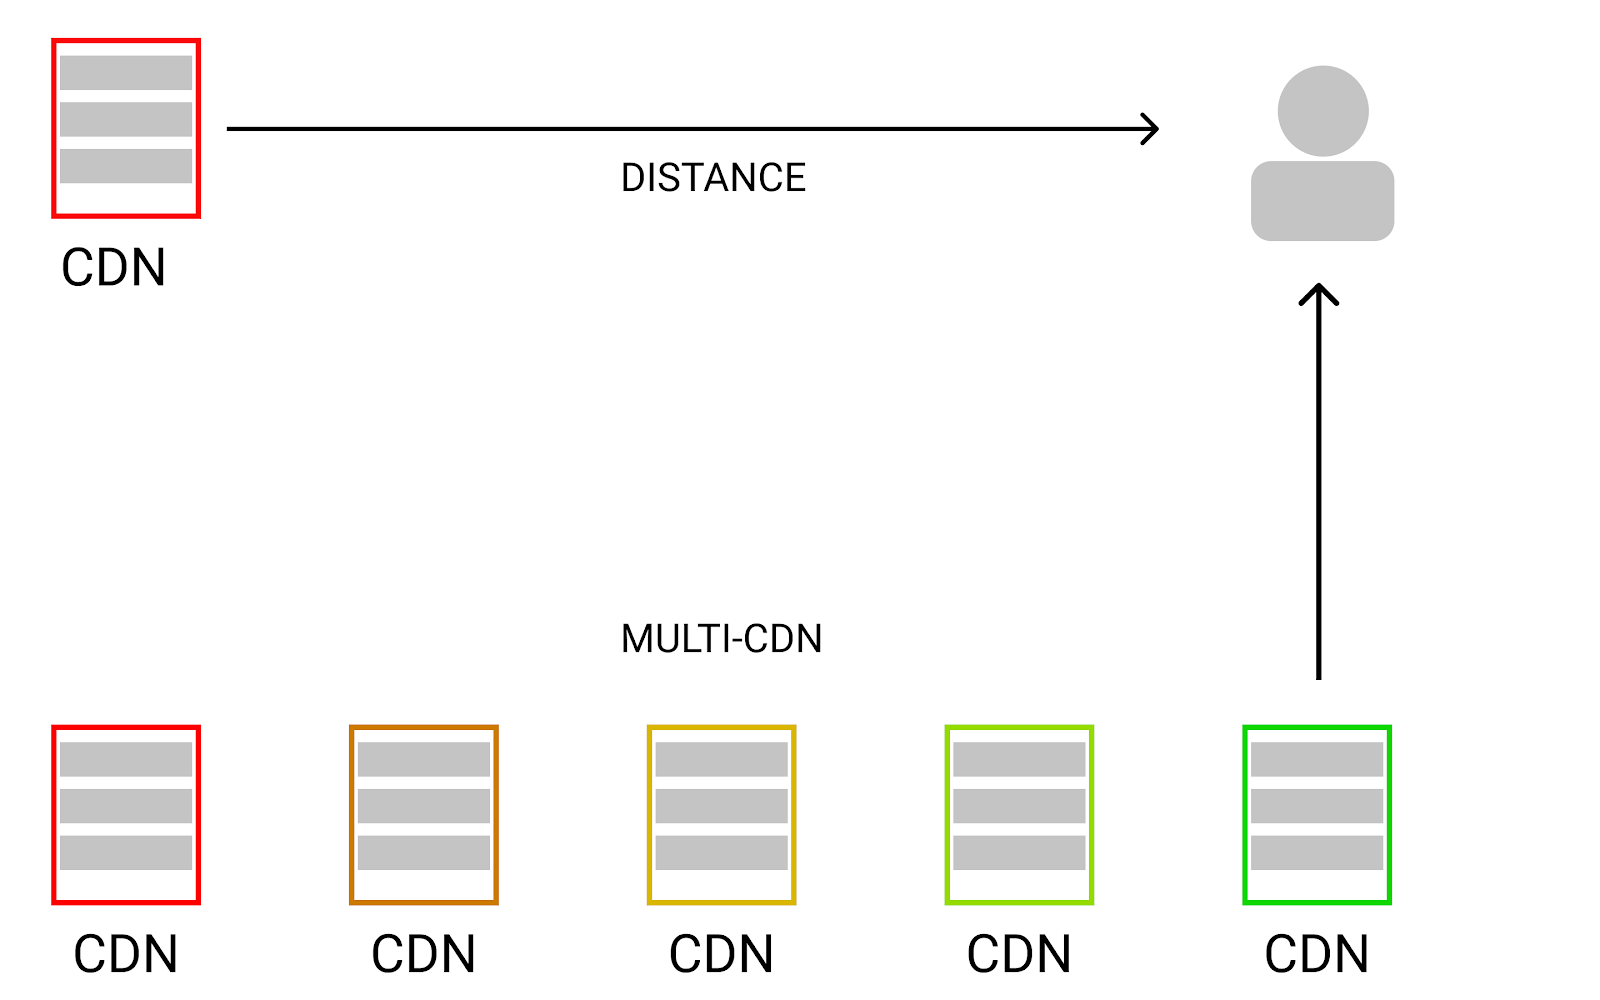 The Closest CDN tends to serve content the fastest.